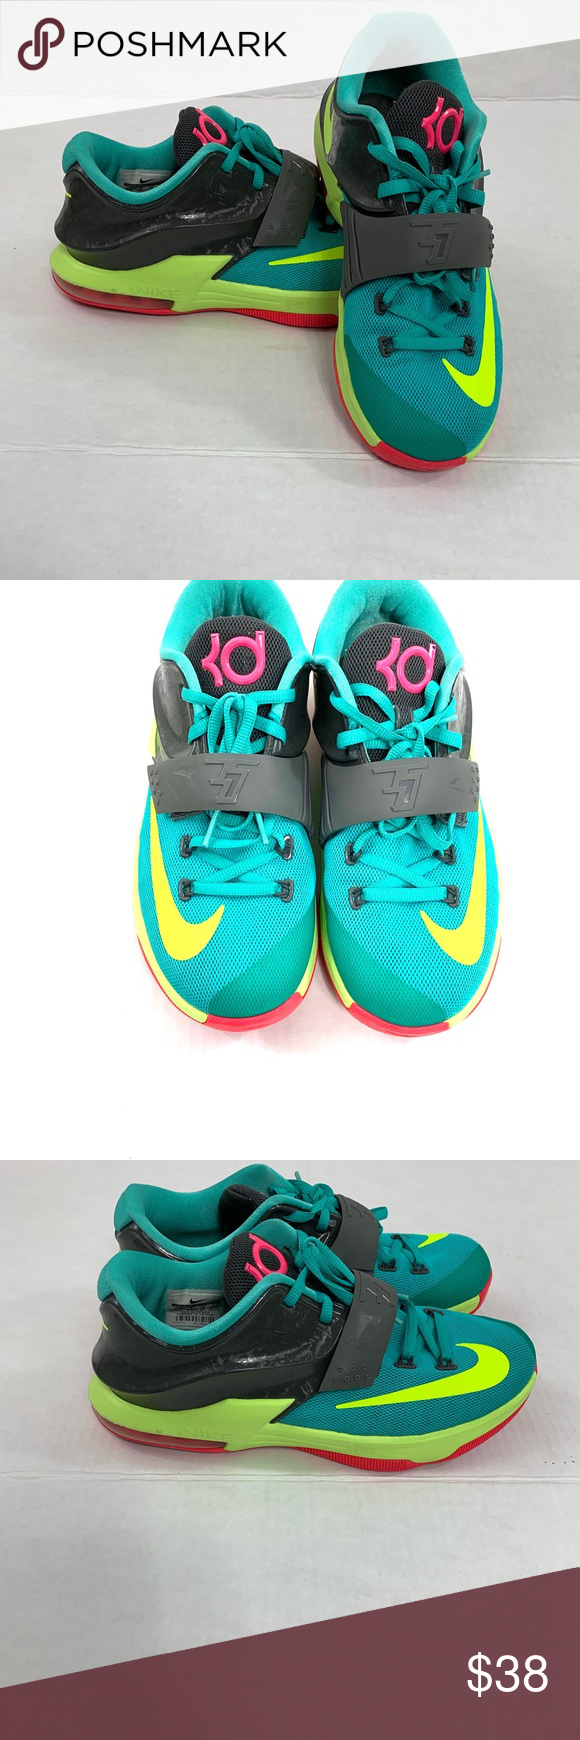 Nike KD Vll 7 GS Youth boys shoes Nike KD VII 7 GS Youth